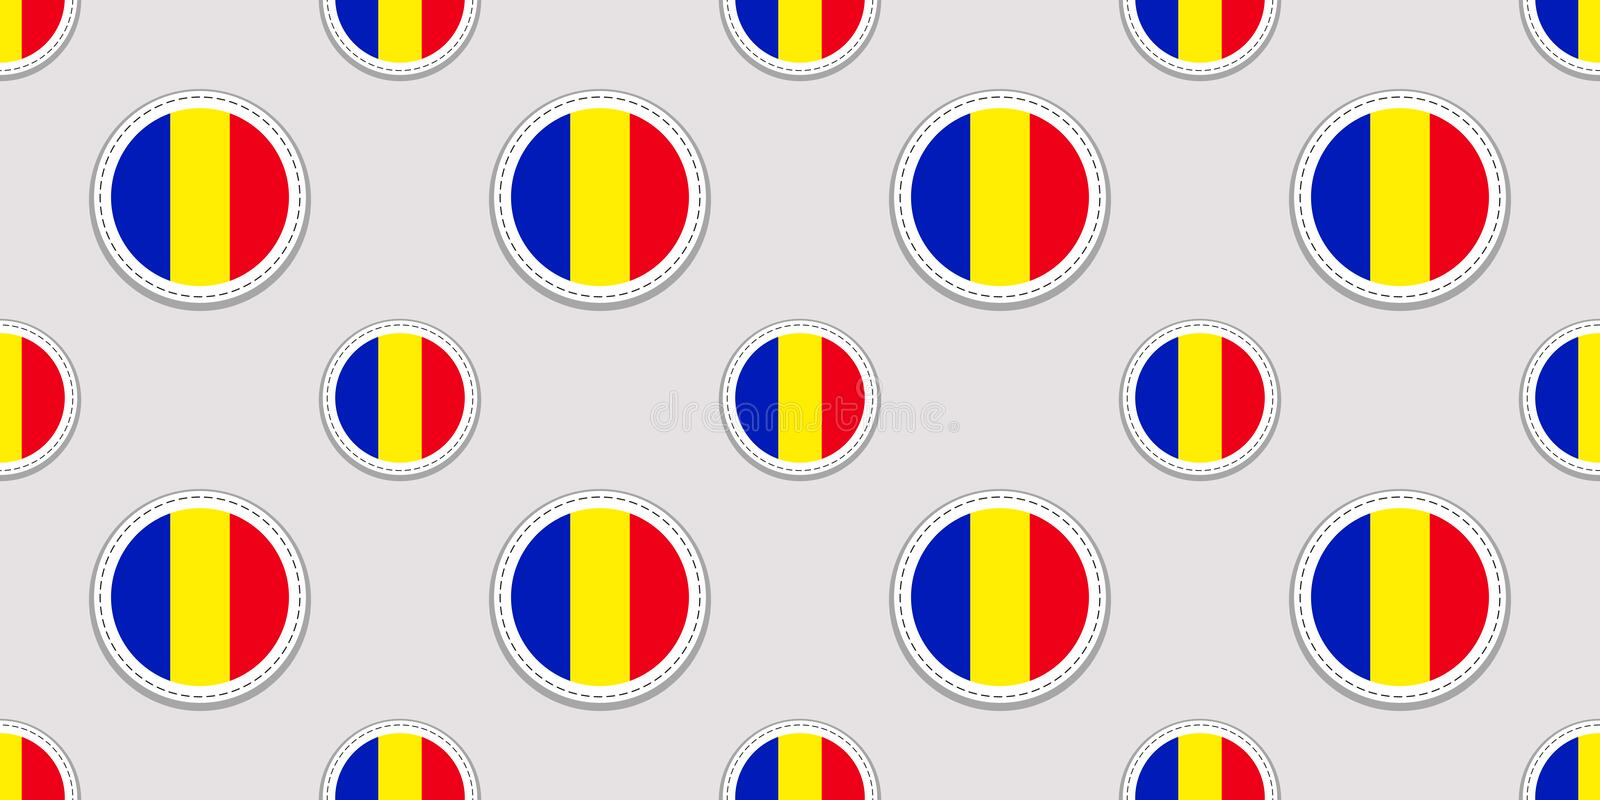 Romania round flag seamless pattern. Romanian background. Vector circle icons. Geometric symbols. Texture for sports royalty free illustration